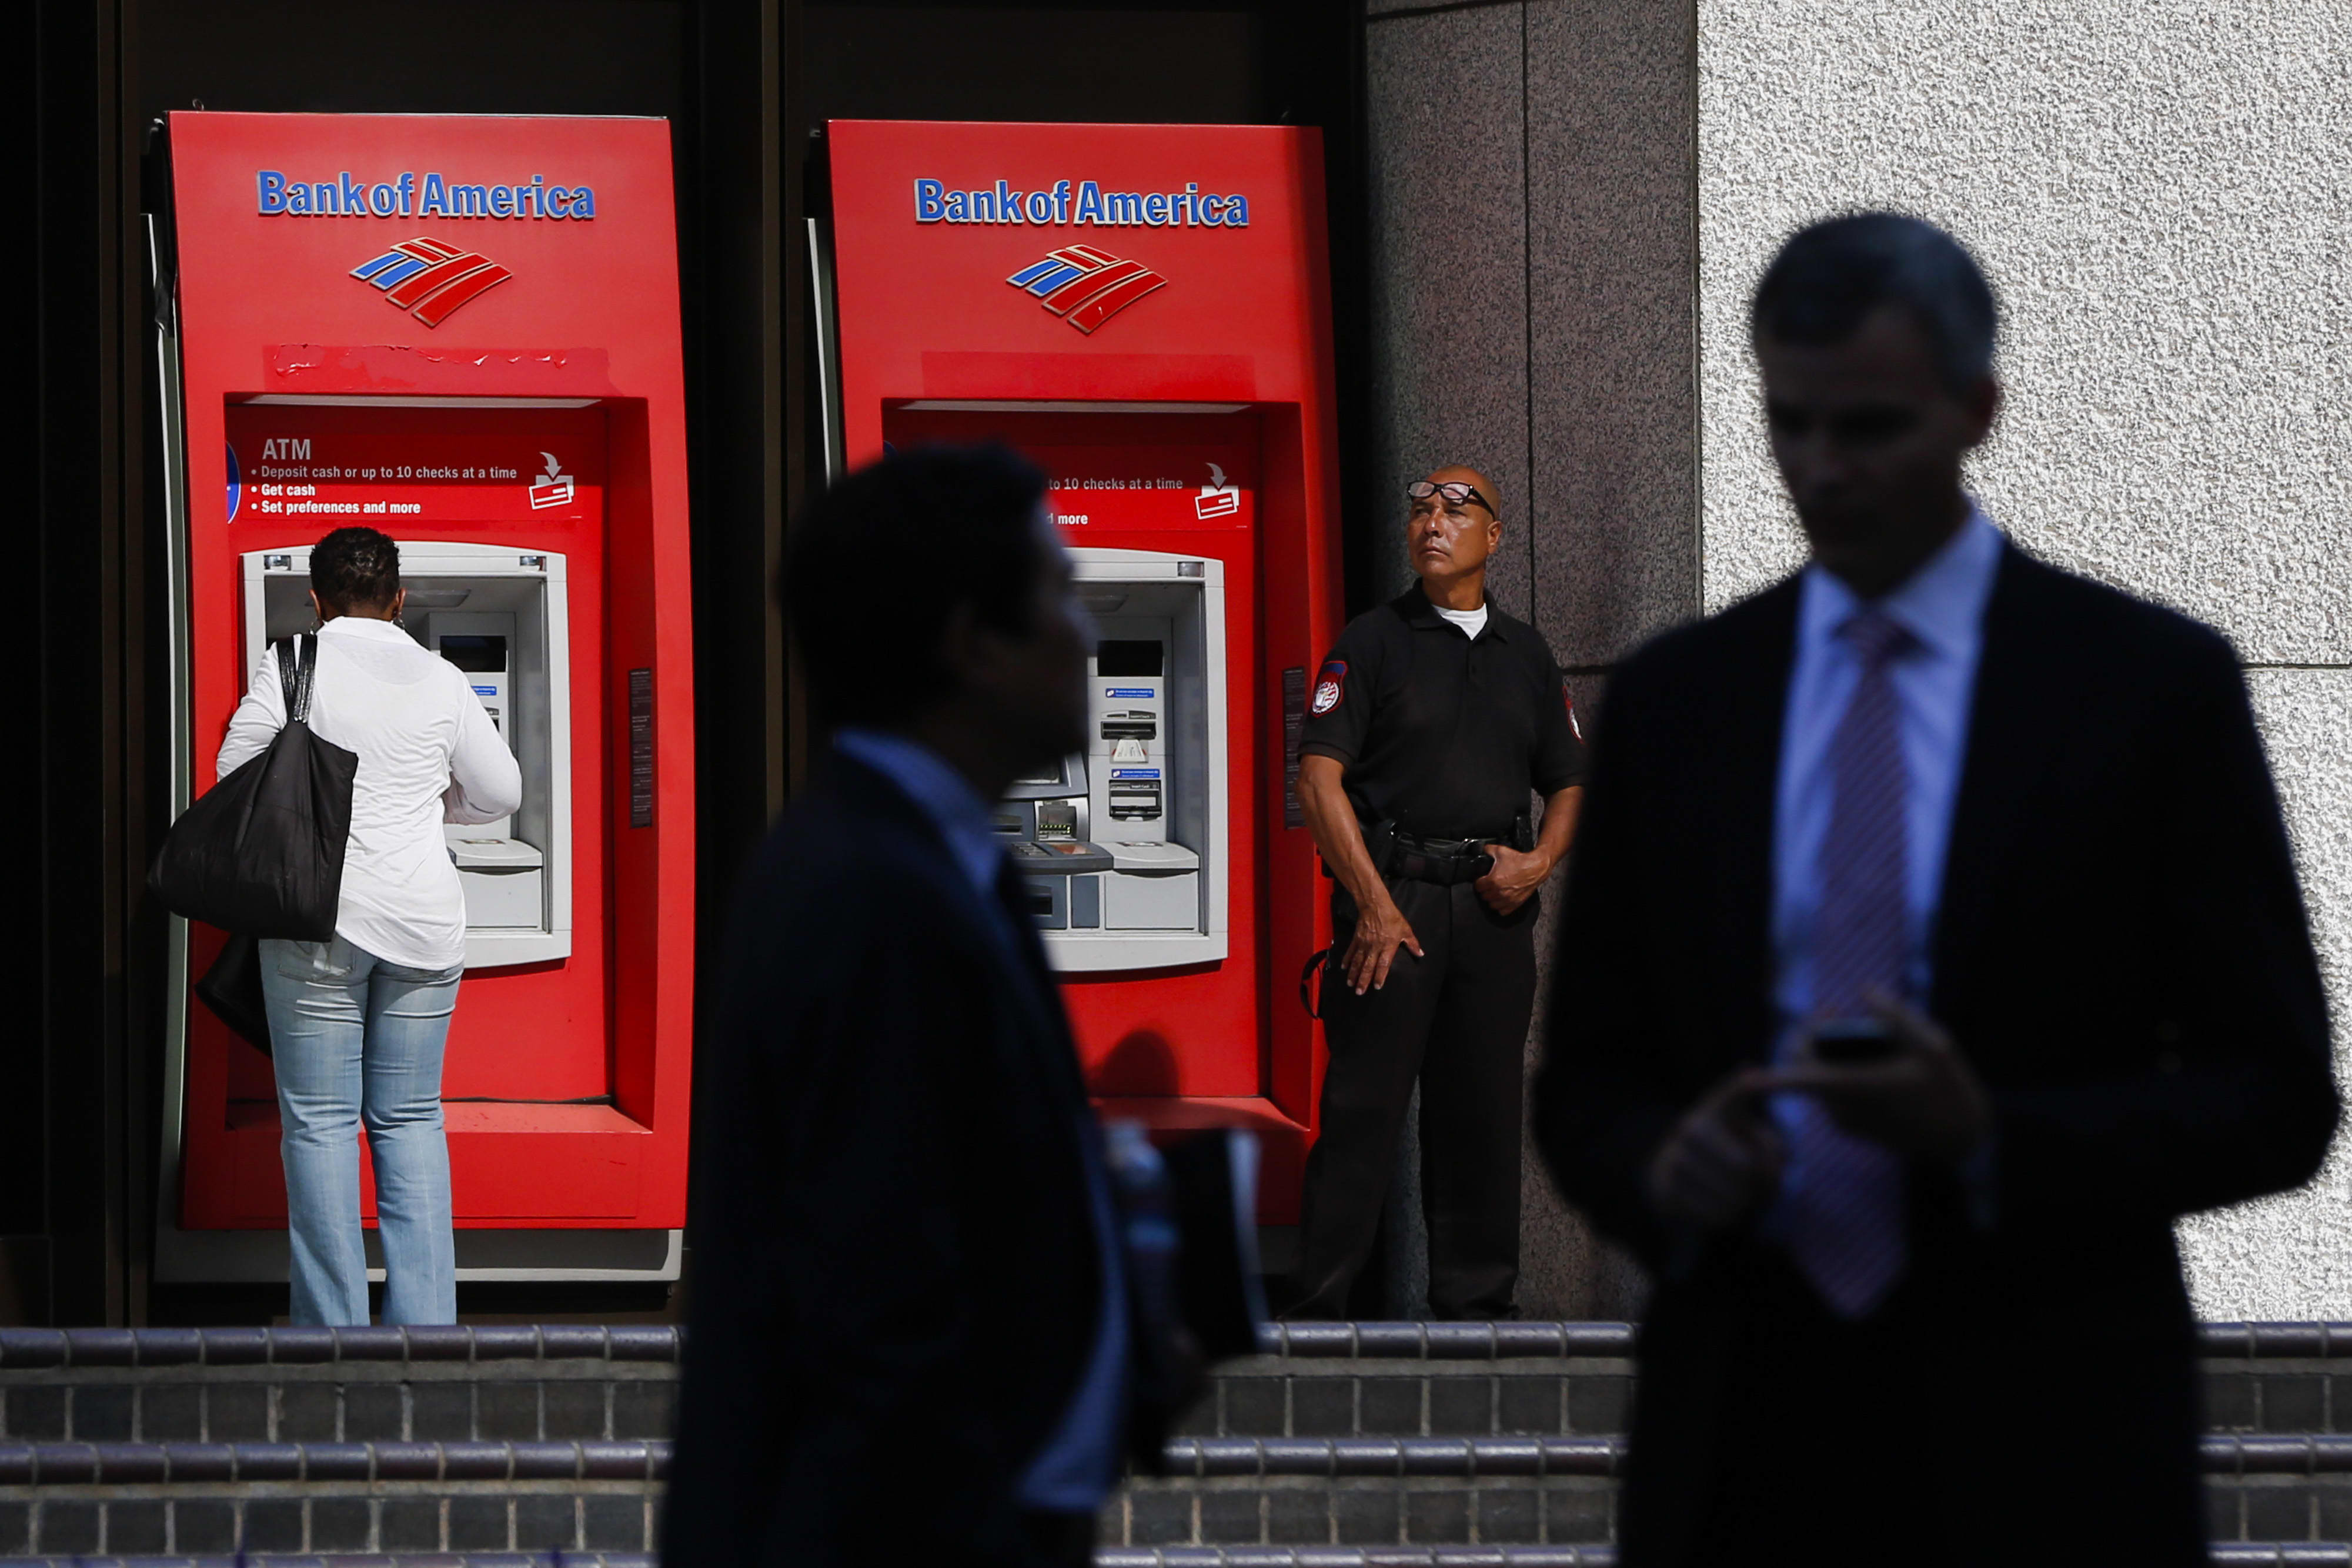 www.cnbc.com: Bank of America announces expansion of racial justice initiatives